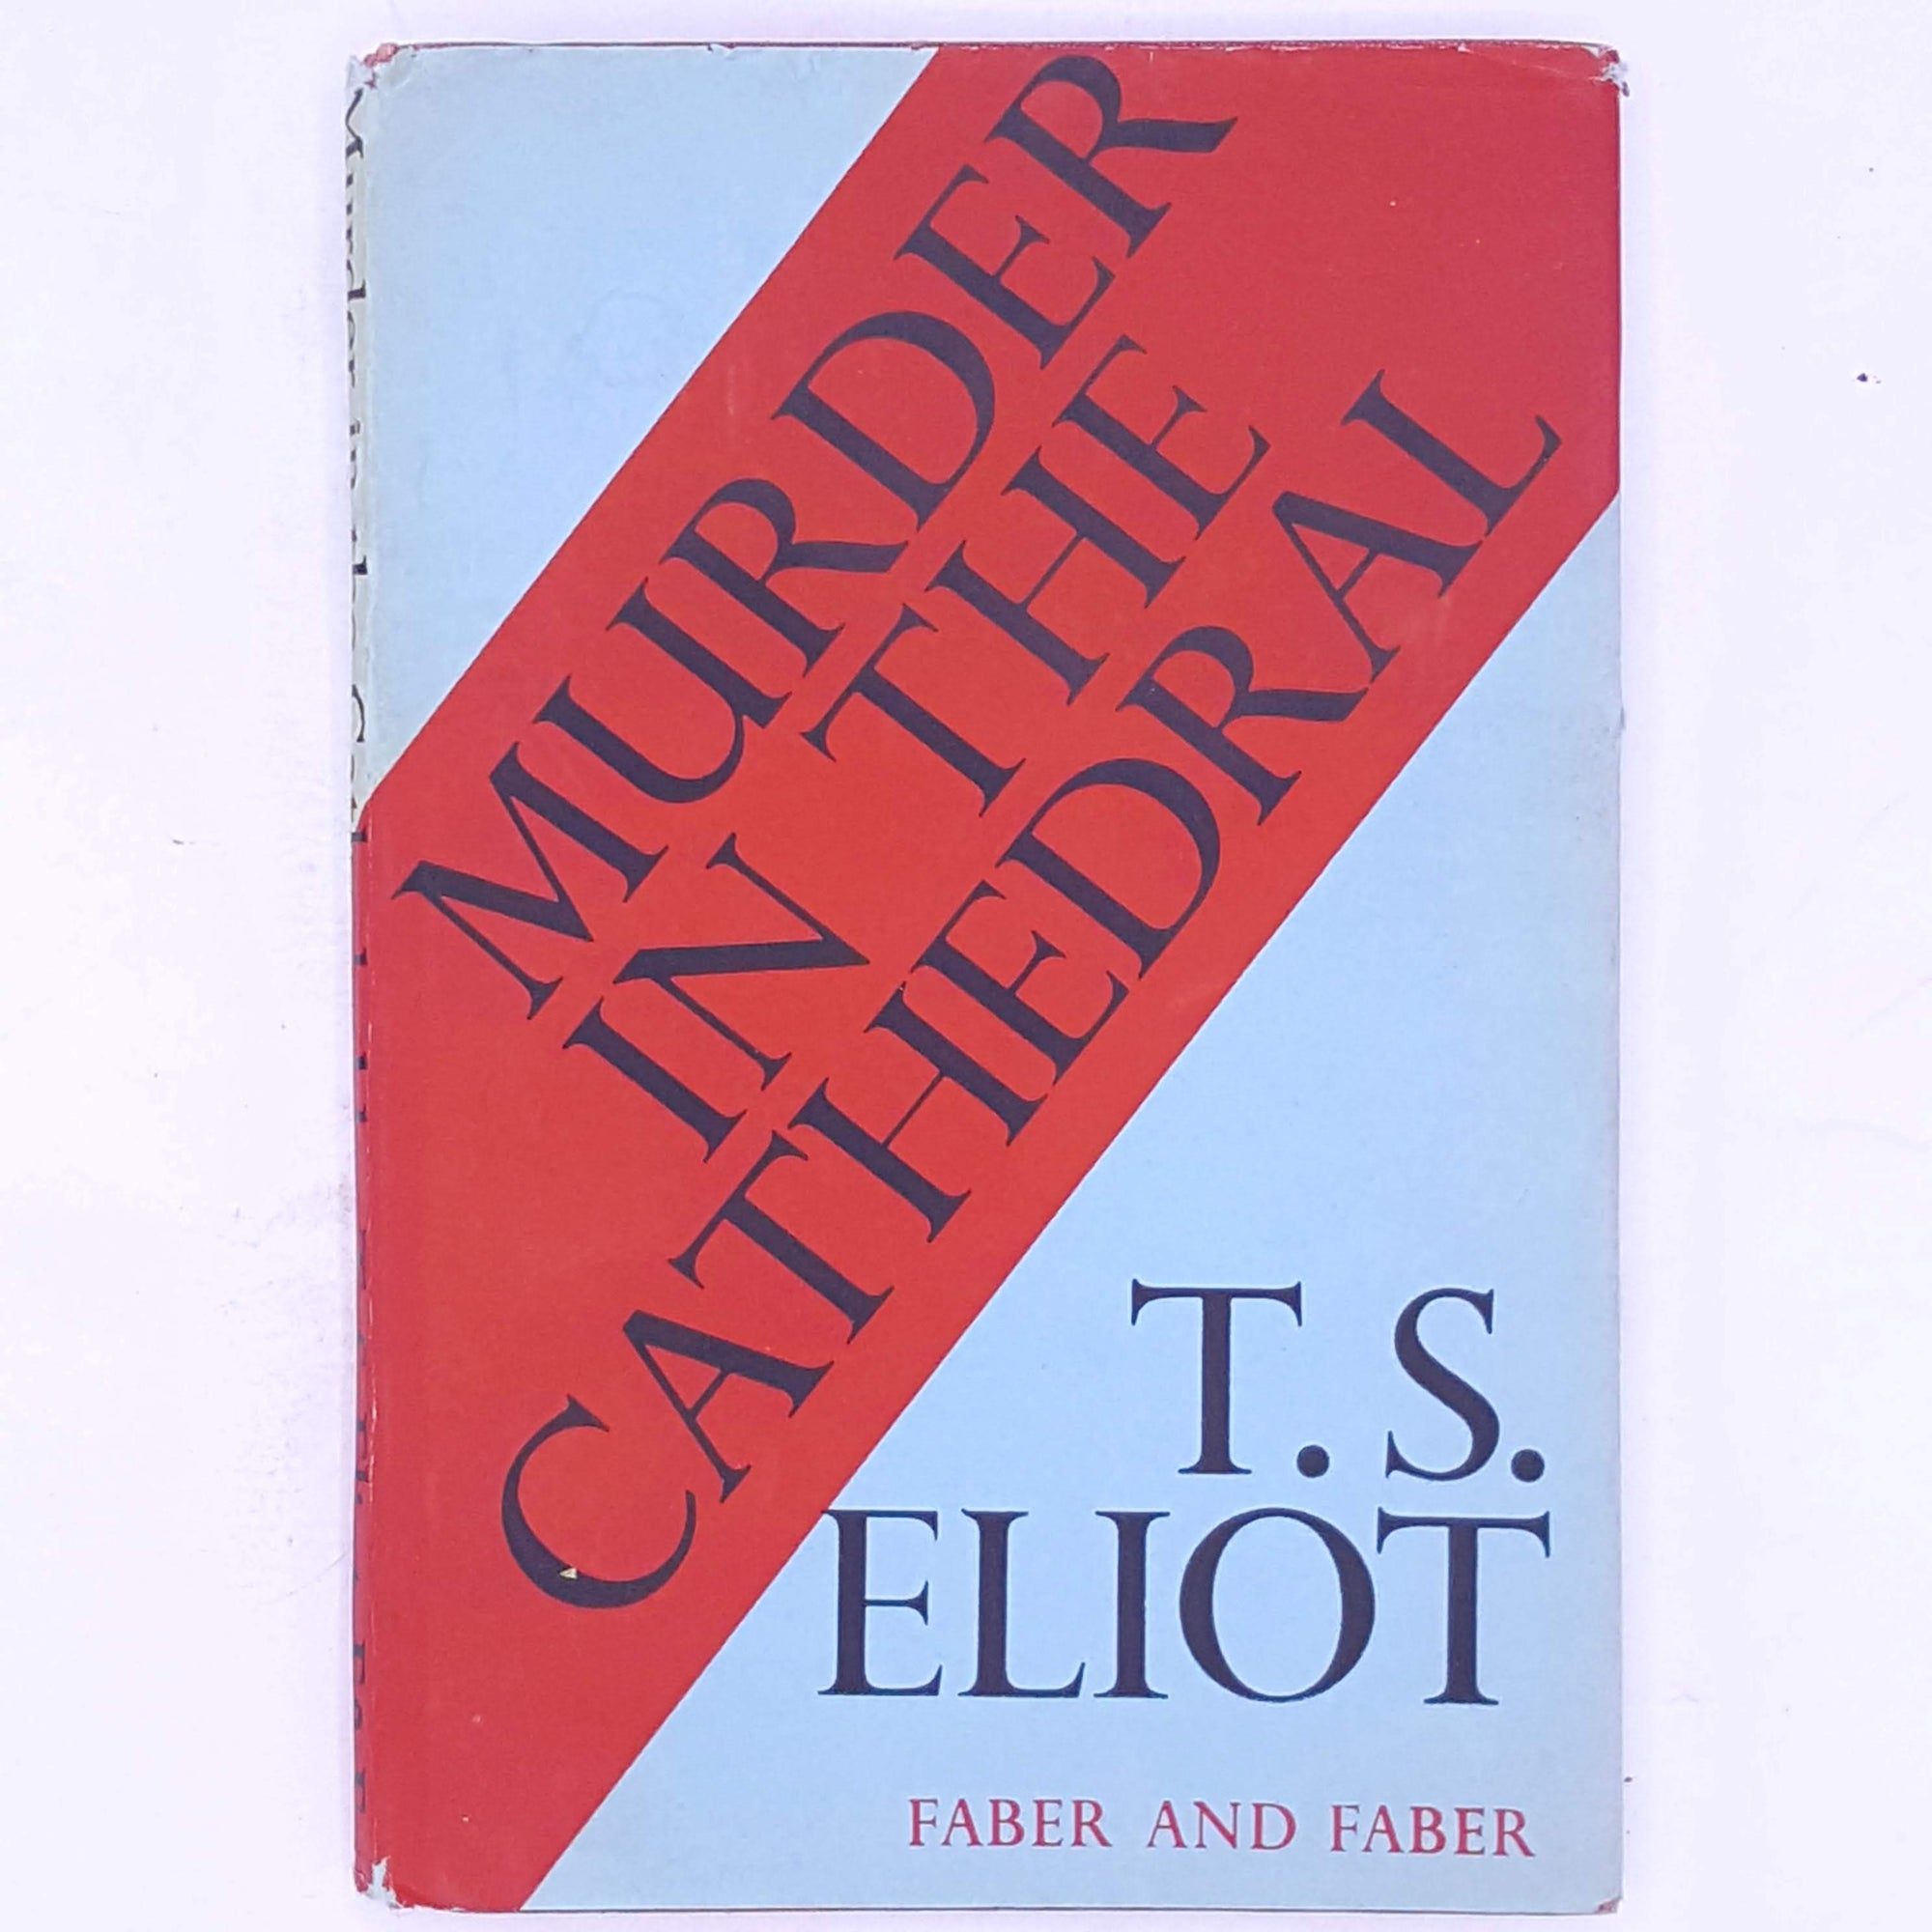 vintage-patterned-old-country-house-library-classic-antique-t.s.-eliot-books-murder-in-the-cathedral-decorative-thrift-faber-and-faber-